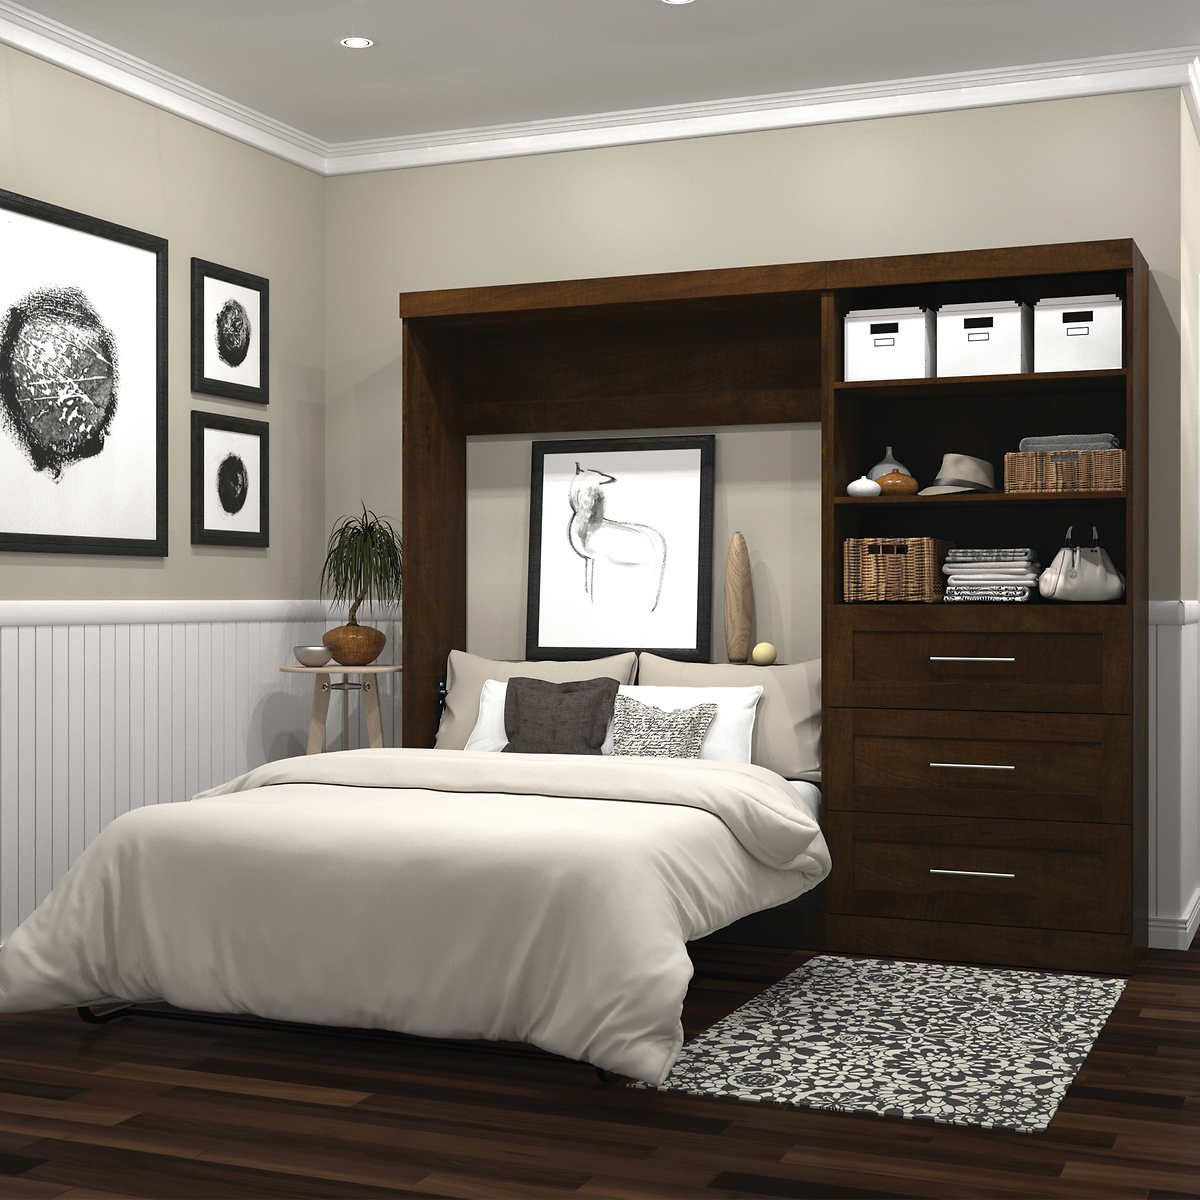 "White Washed Bedroom Furniture Set Fresh Boutique Full Wall Bed with 36"" Storage Unit In Brown"